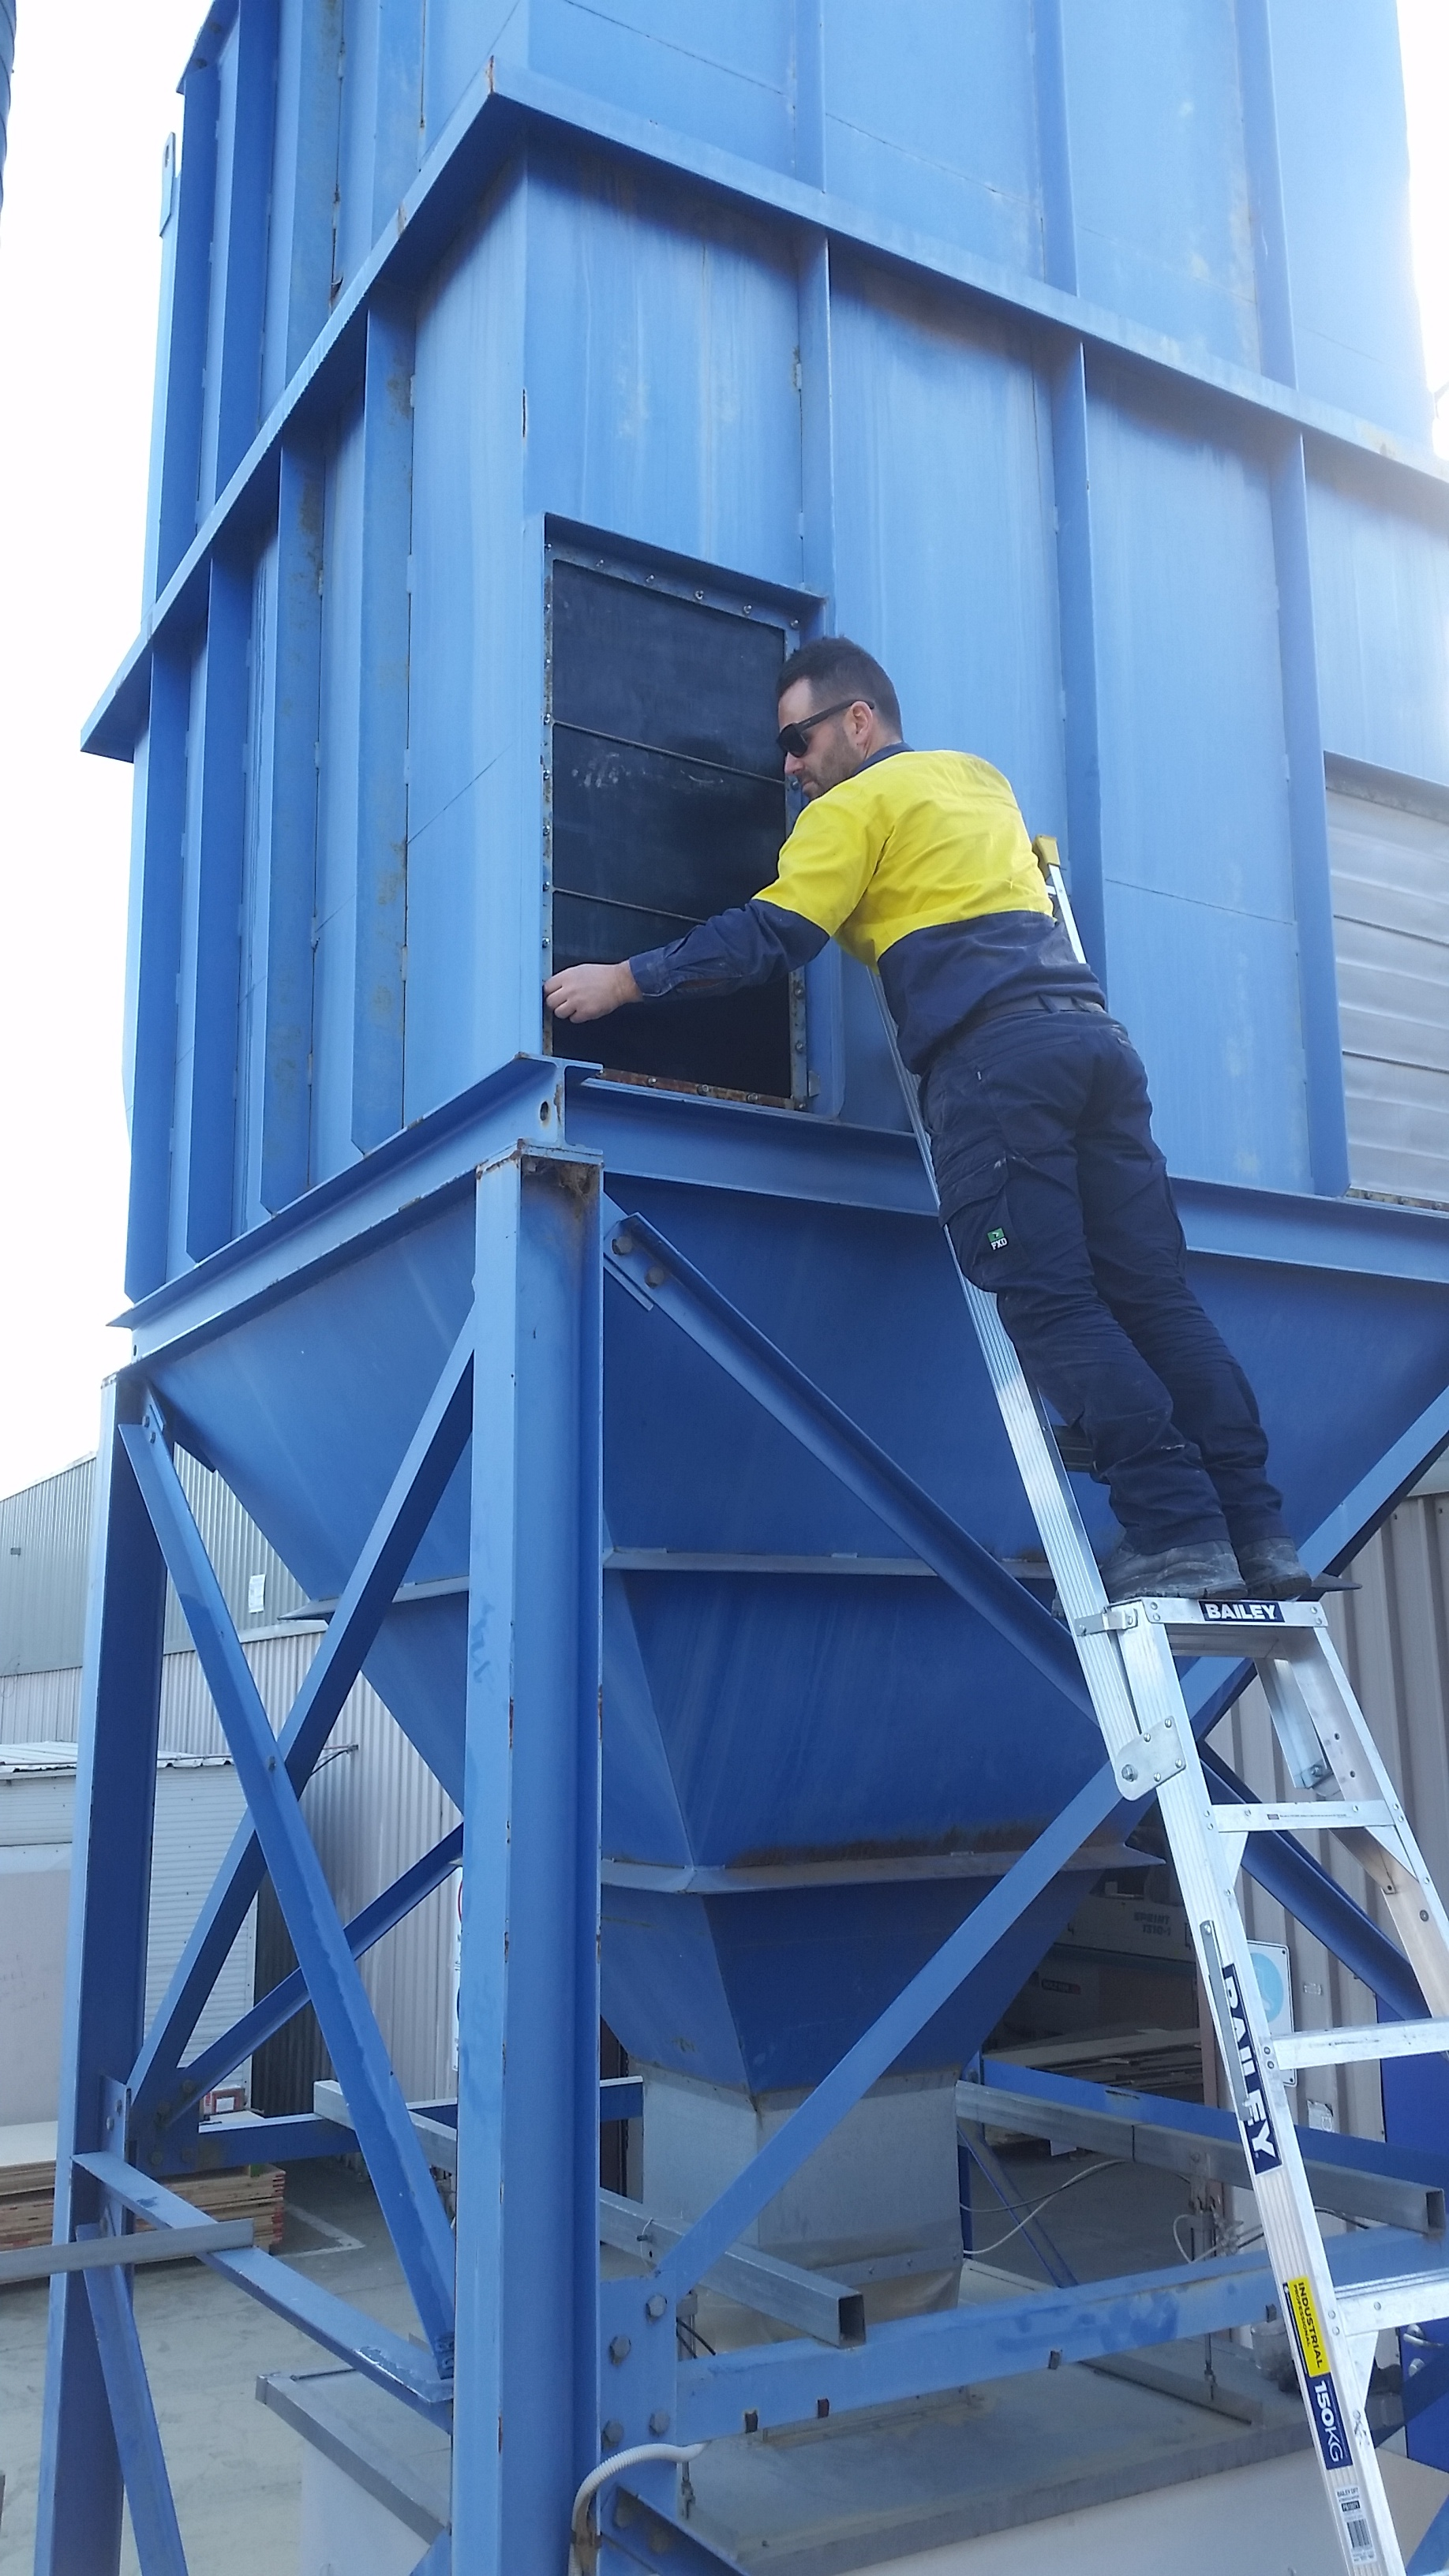 Dust collector repairs